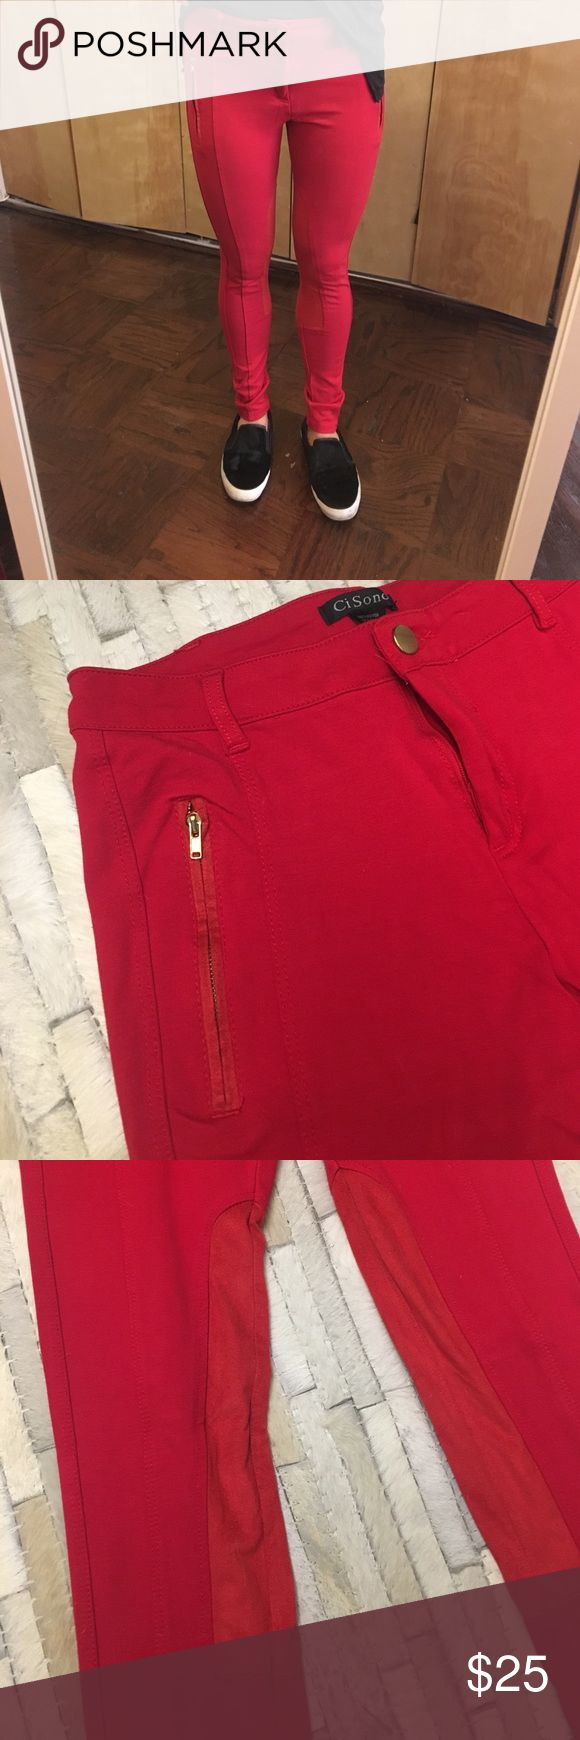 Ci Sono Red Skinny Pants These Italian red riding pants are like new! Stretchy material, with suede and zipper details make these super cute! Ci Sono Pants Skinny